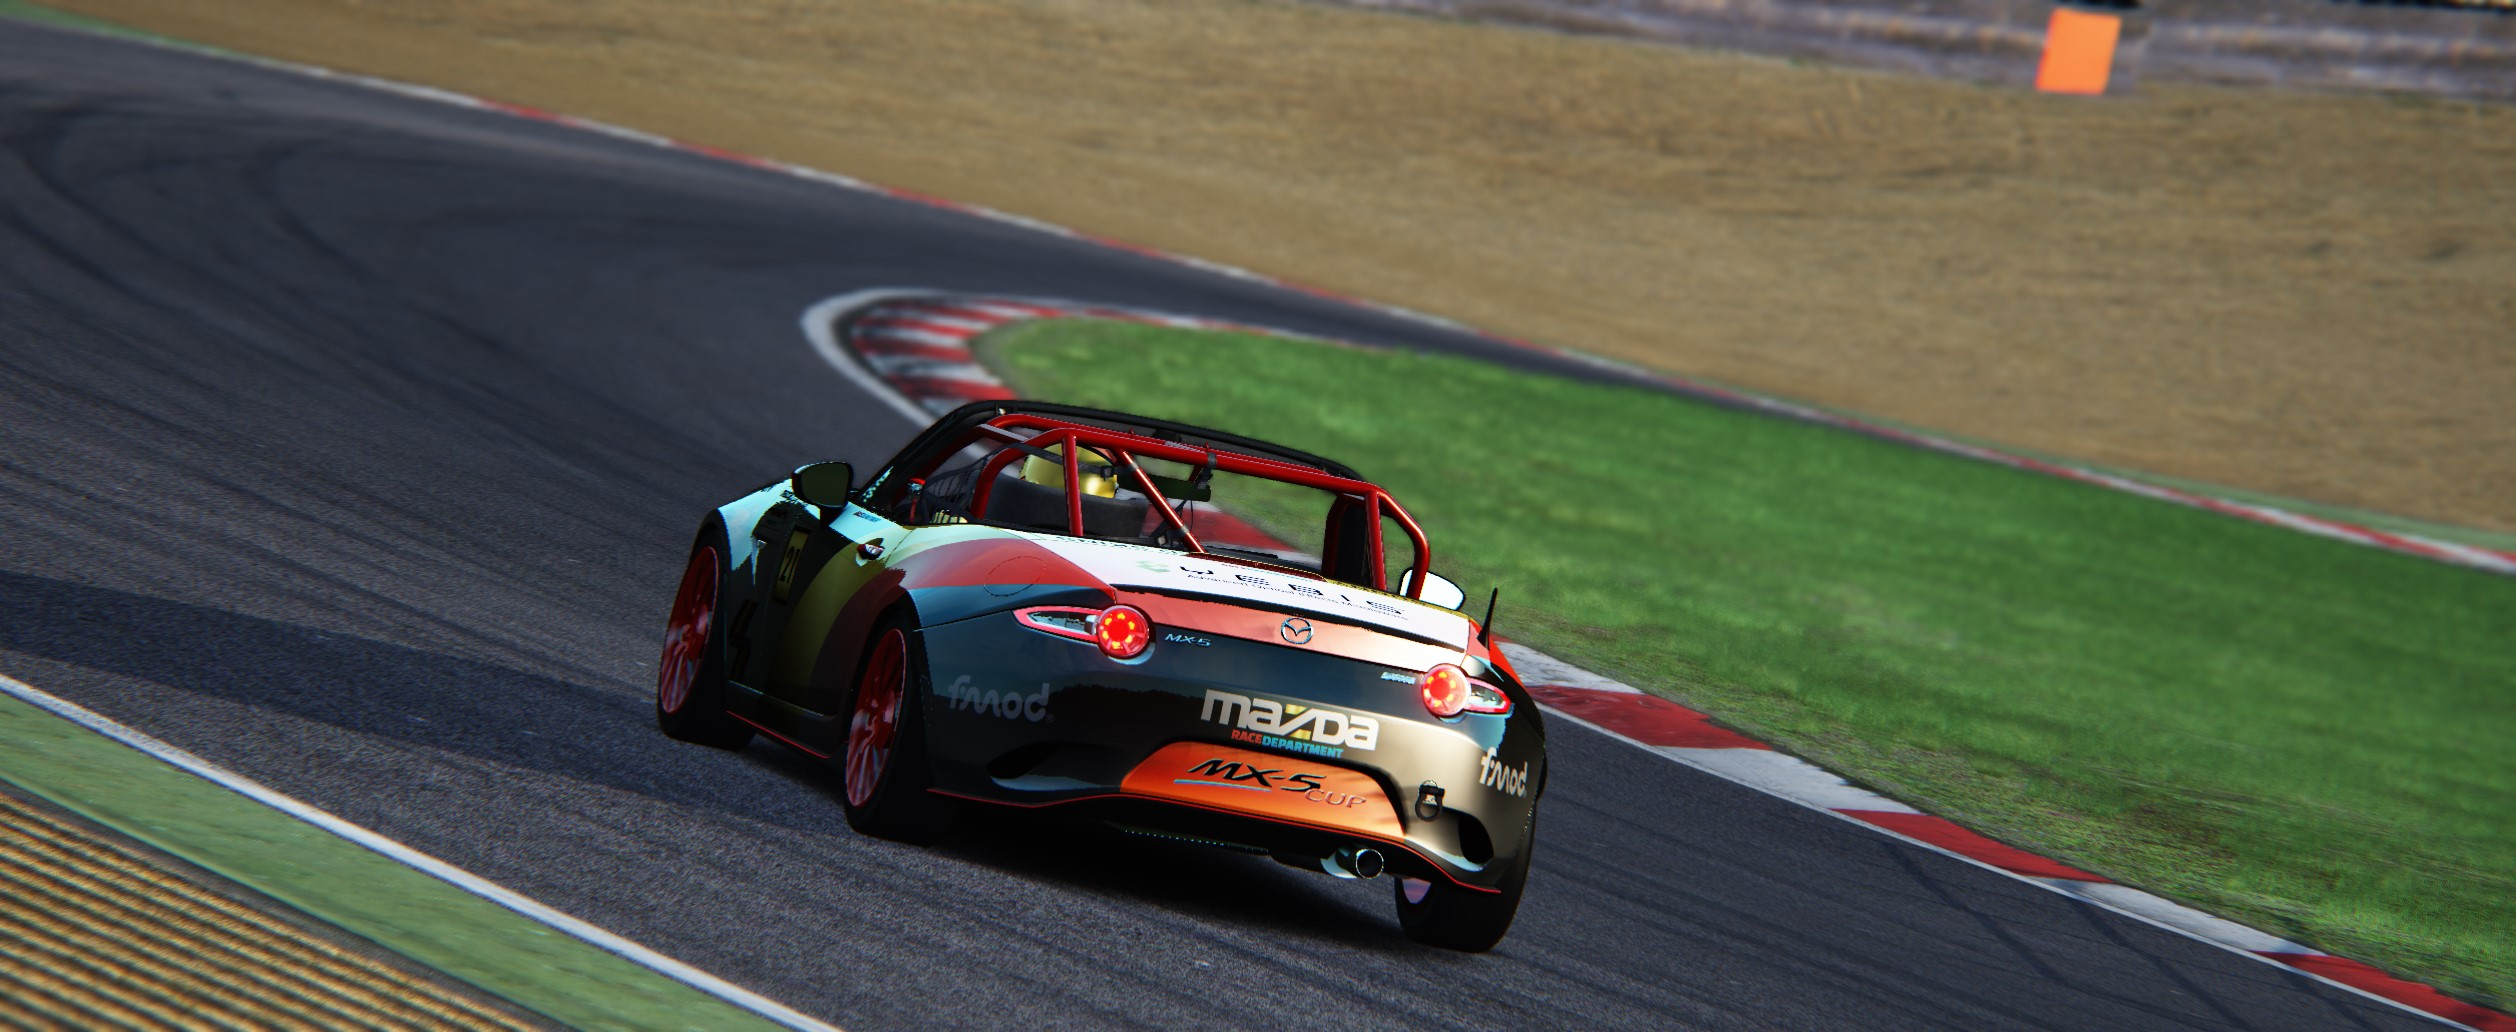 Screenshot_ks_mazda_mx5_cup_ks_brands_hatch_22-7-116-4-55-15.jpg